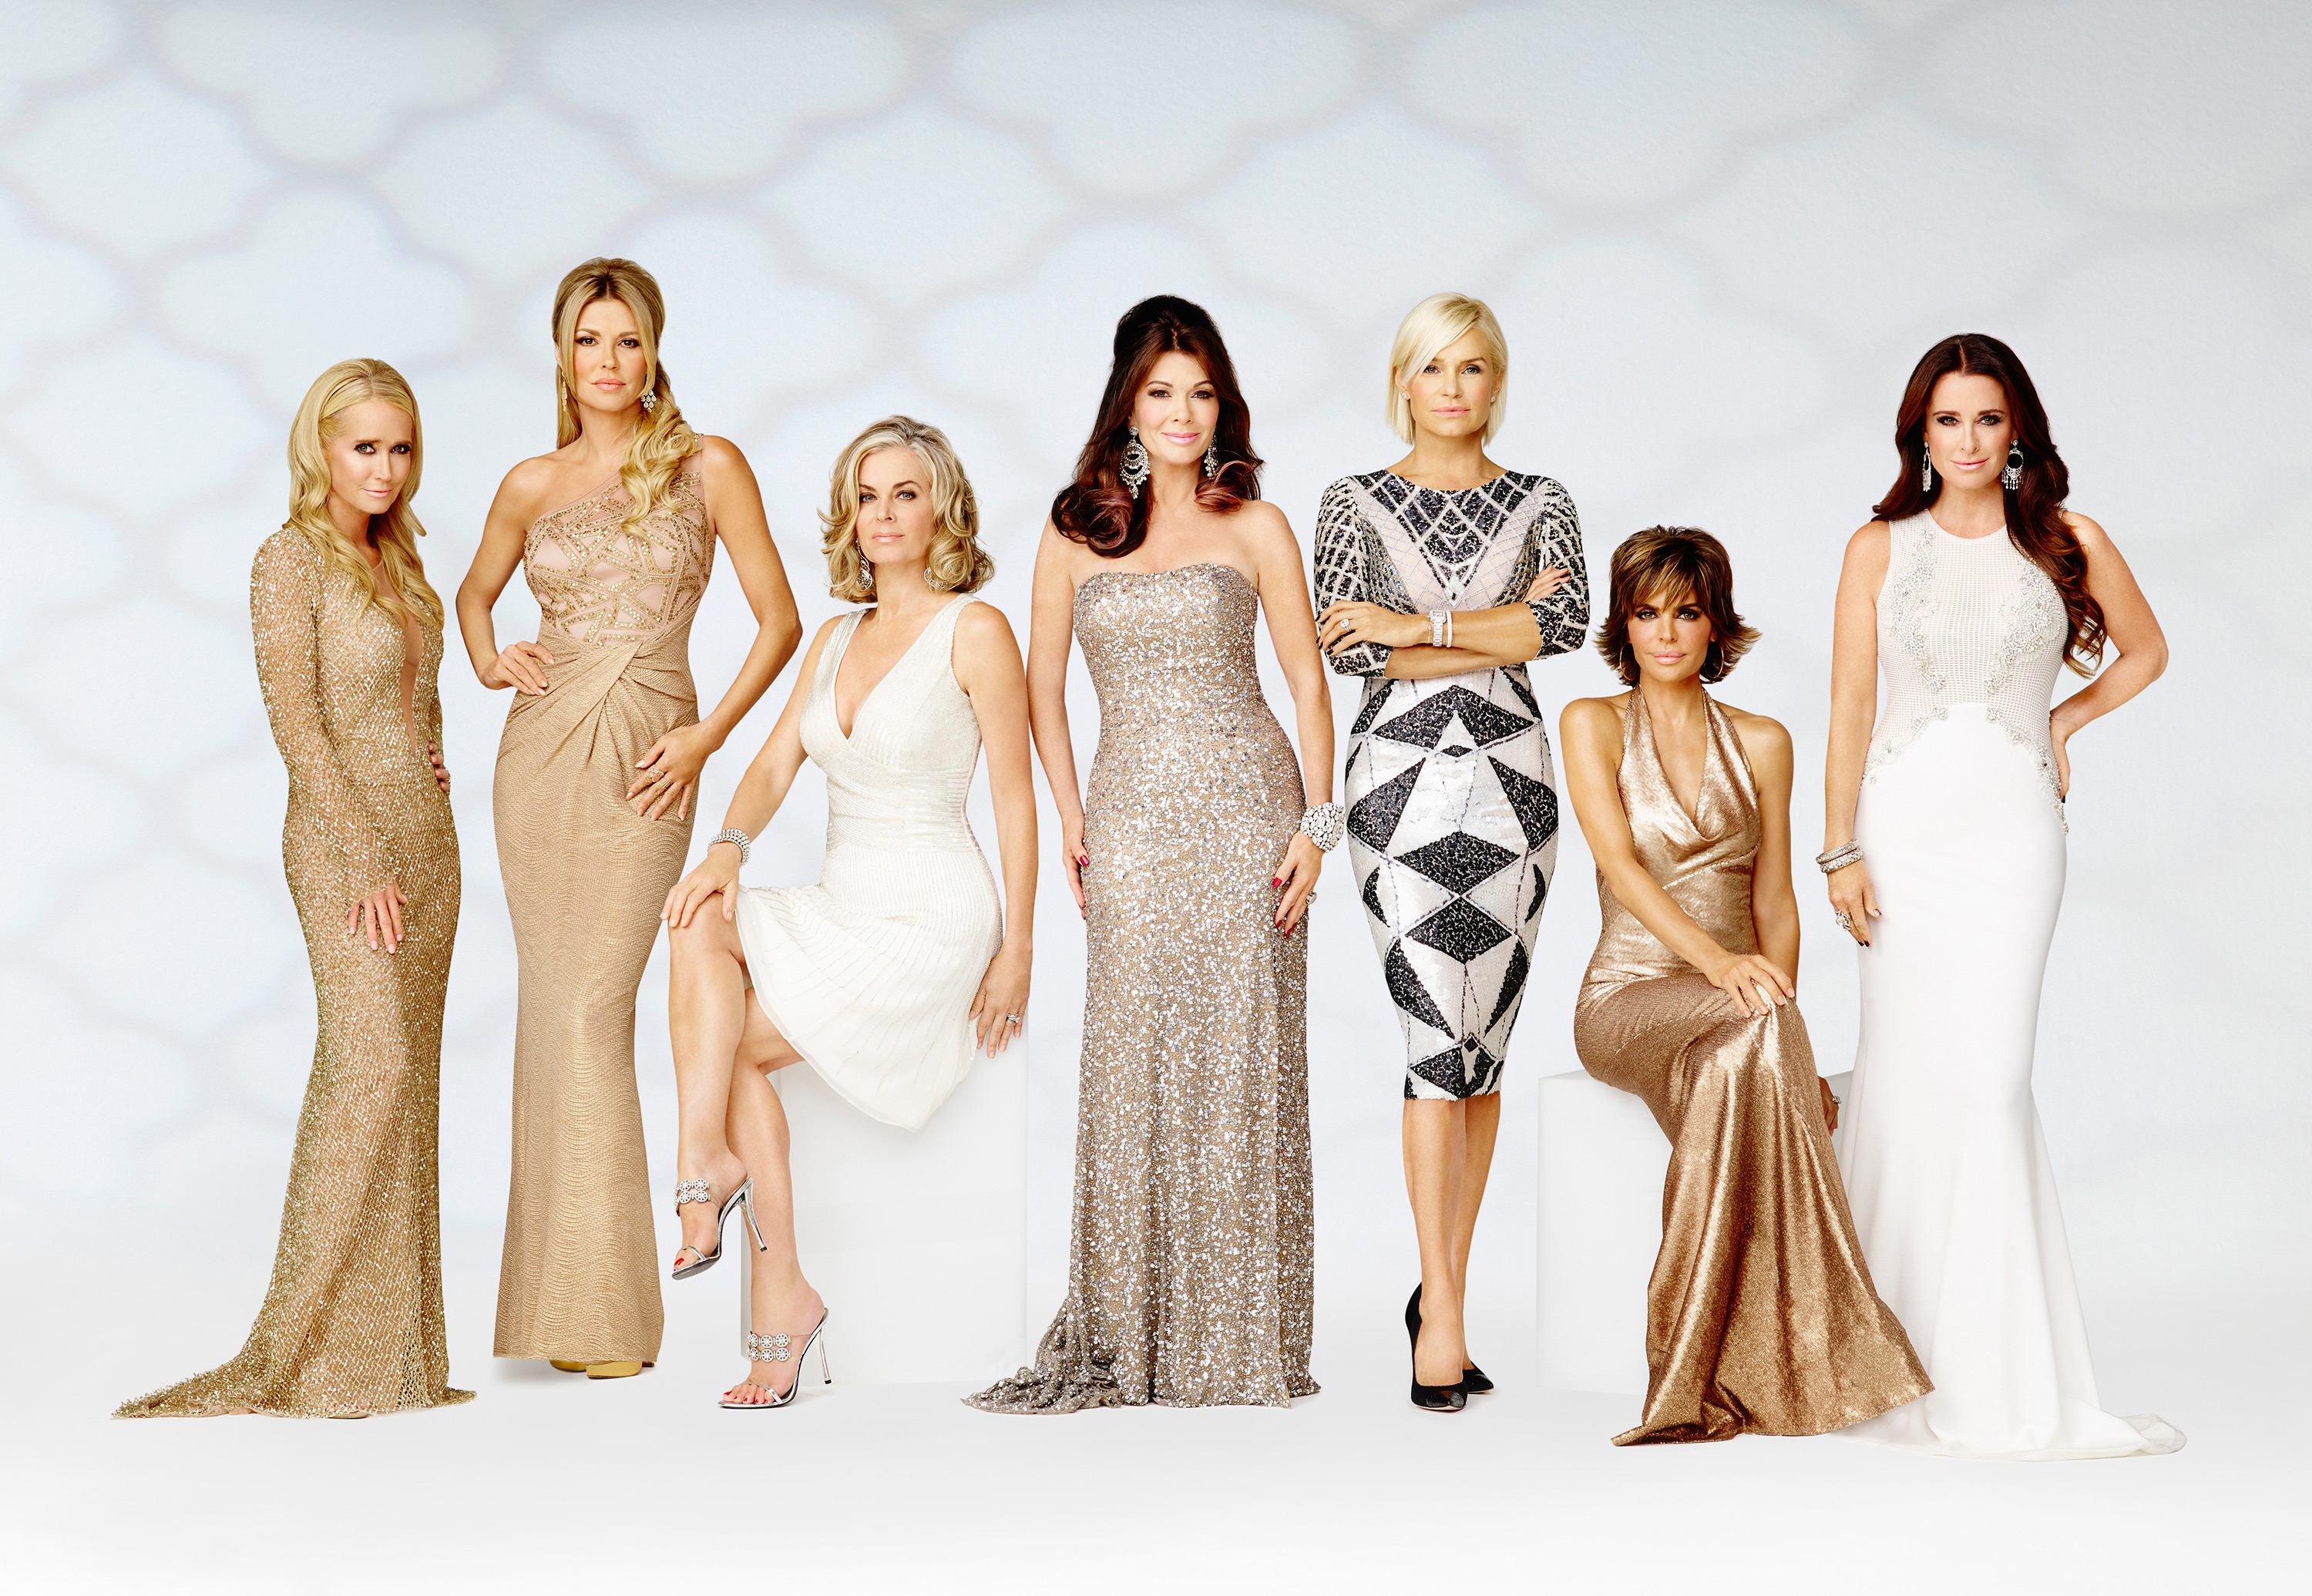 a cast photo from The Real Housewives of Beverly Hills